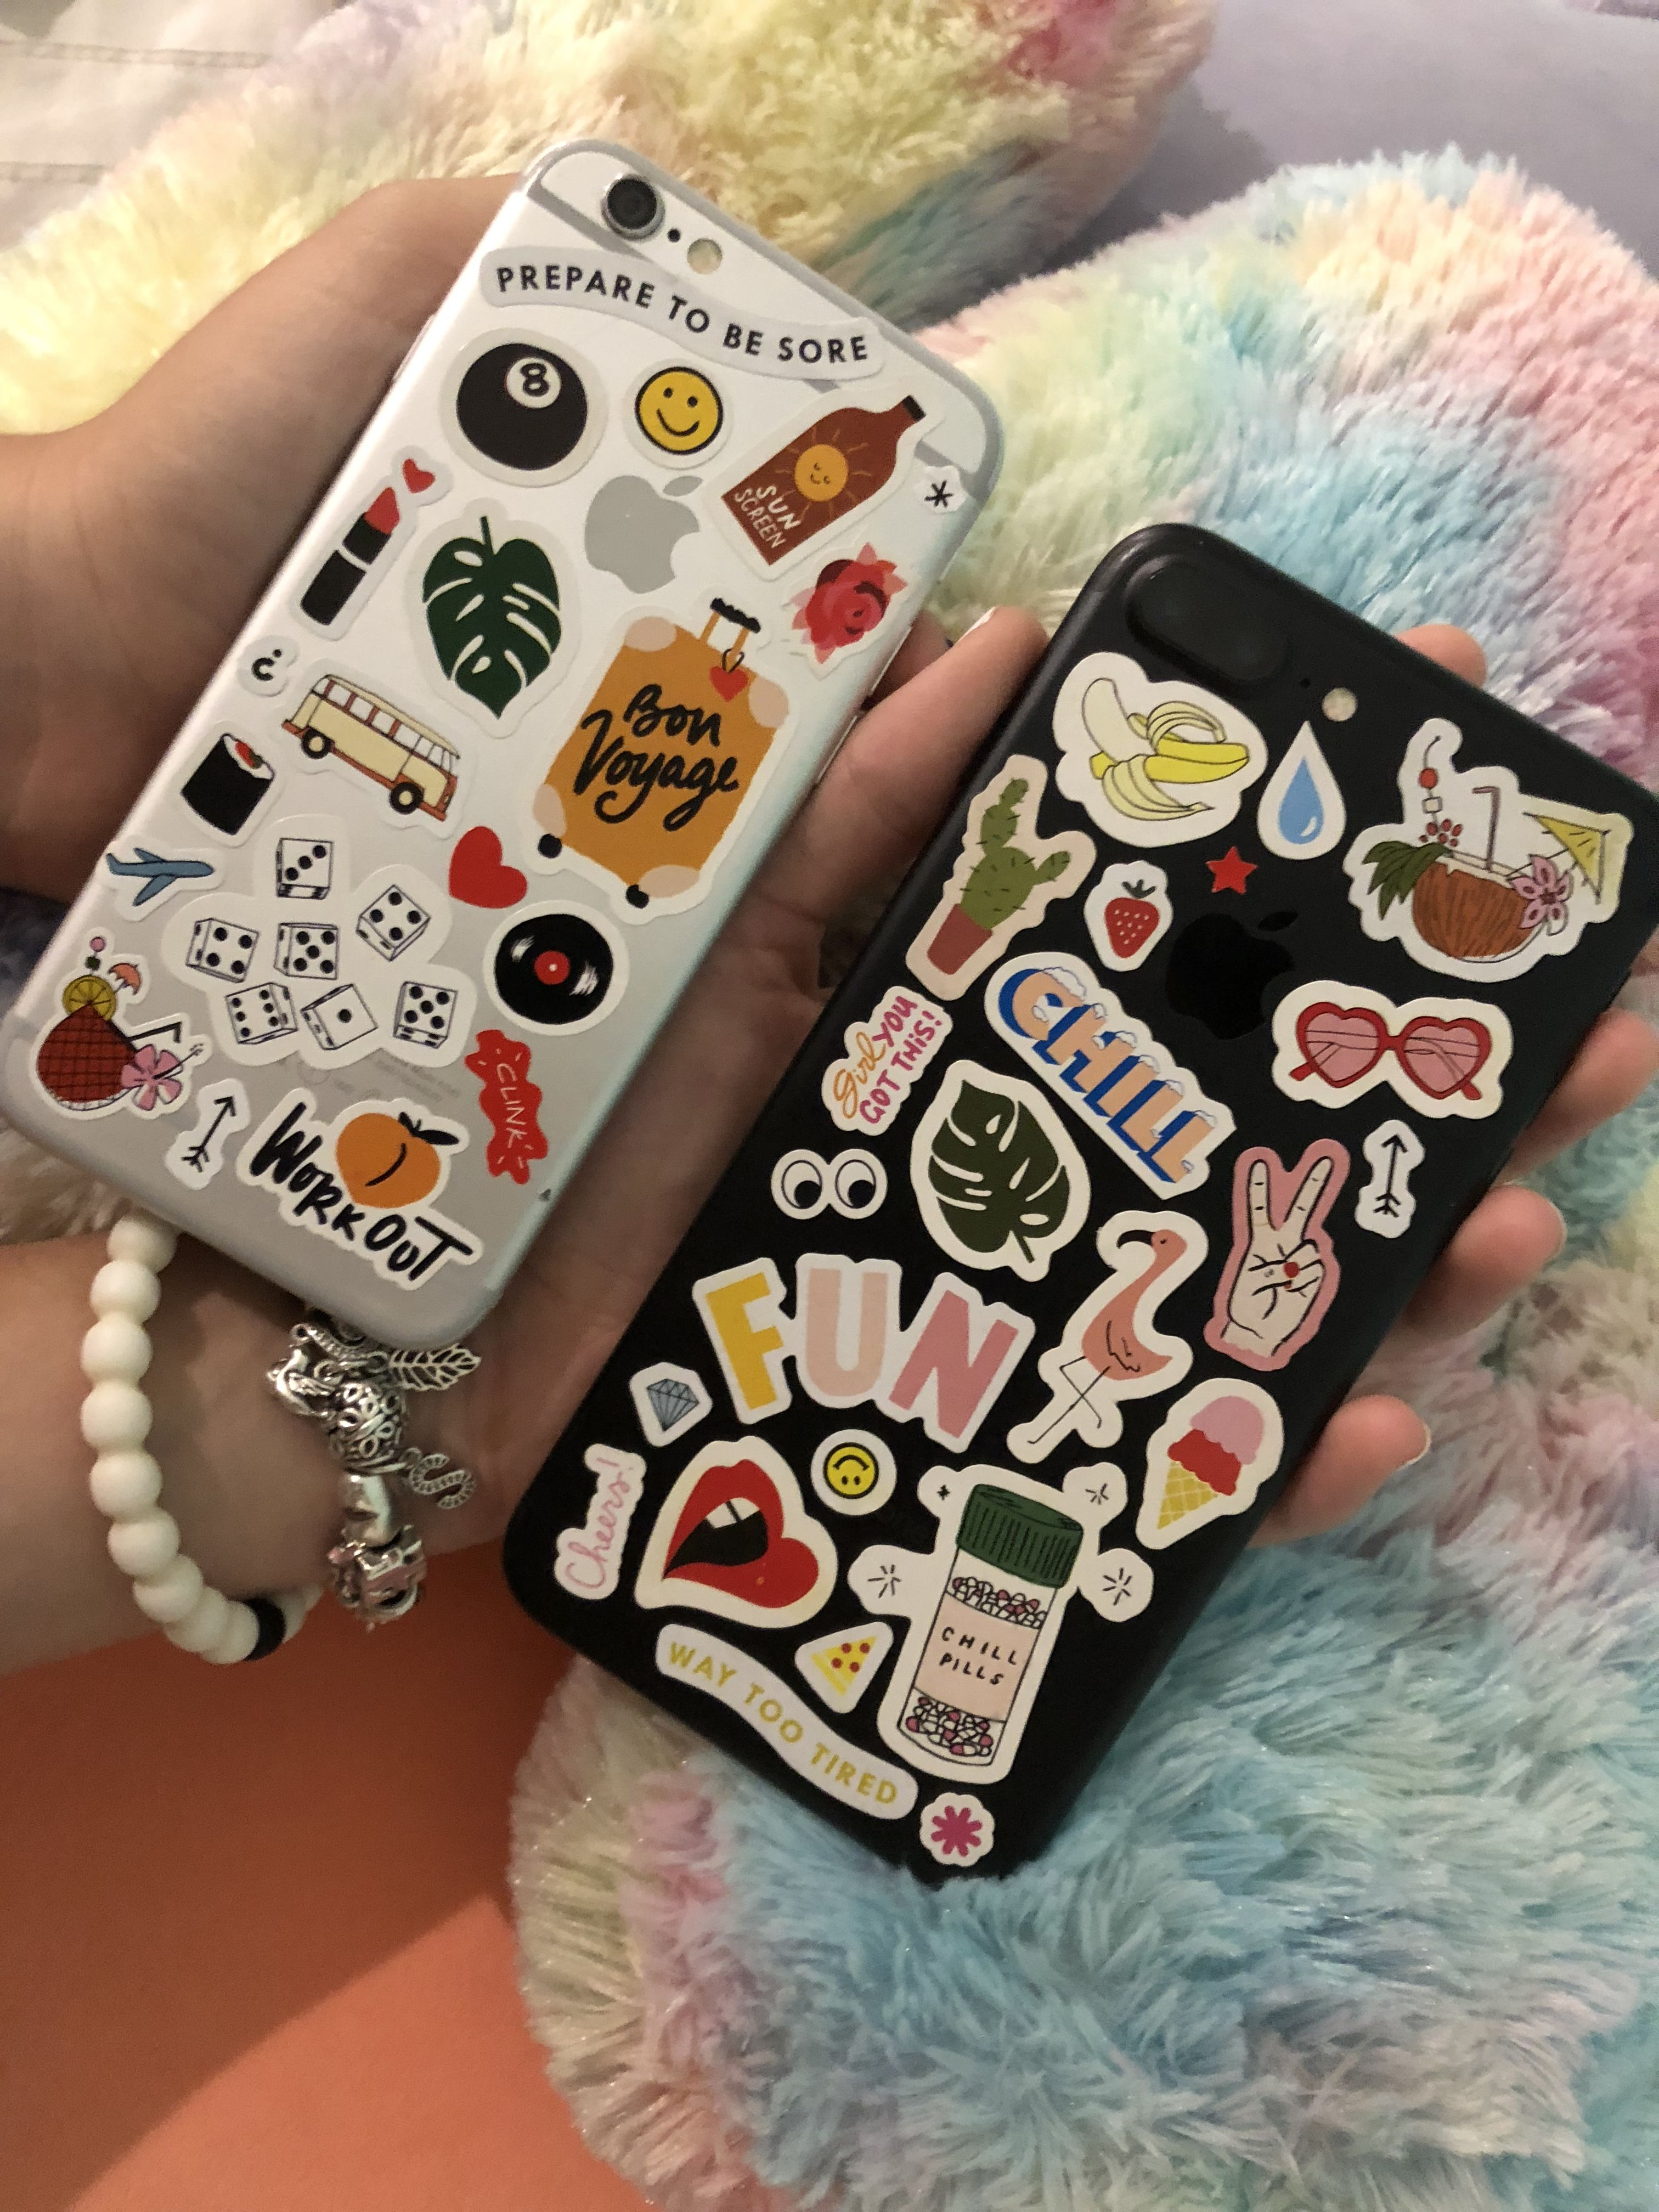 Pin by McKenzie Shilliday on Aesthetic | Diy phone case ...